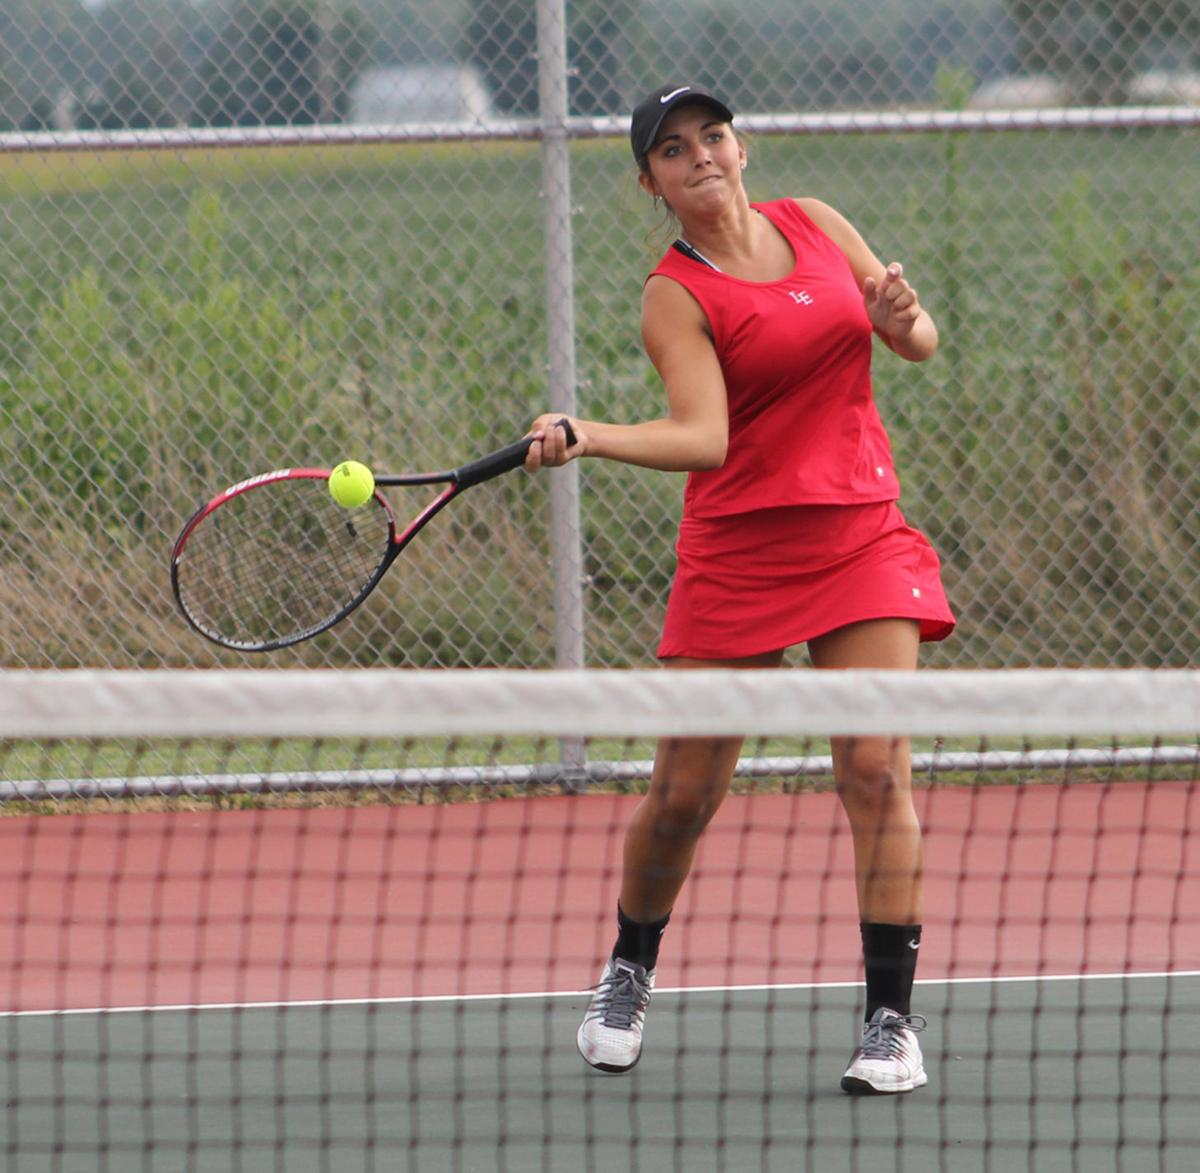 singles in willard Ohsaa state tennis tournament records  1927 n/a singles youngstown rayen carl dennison willard james 1928 n/a singles youngstown rayen carl dennison willard.